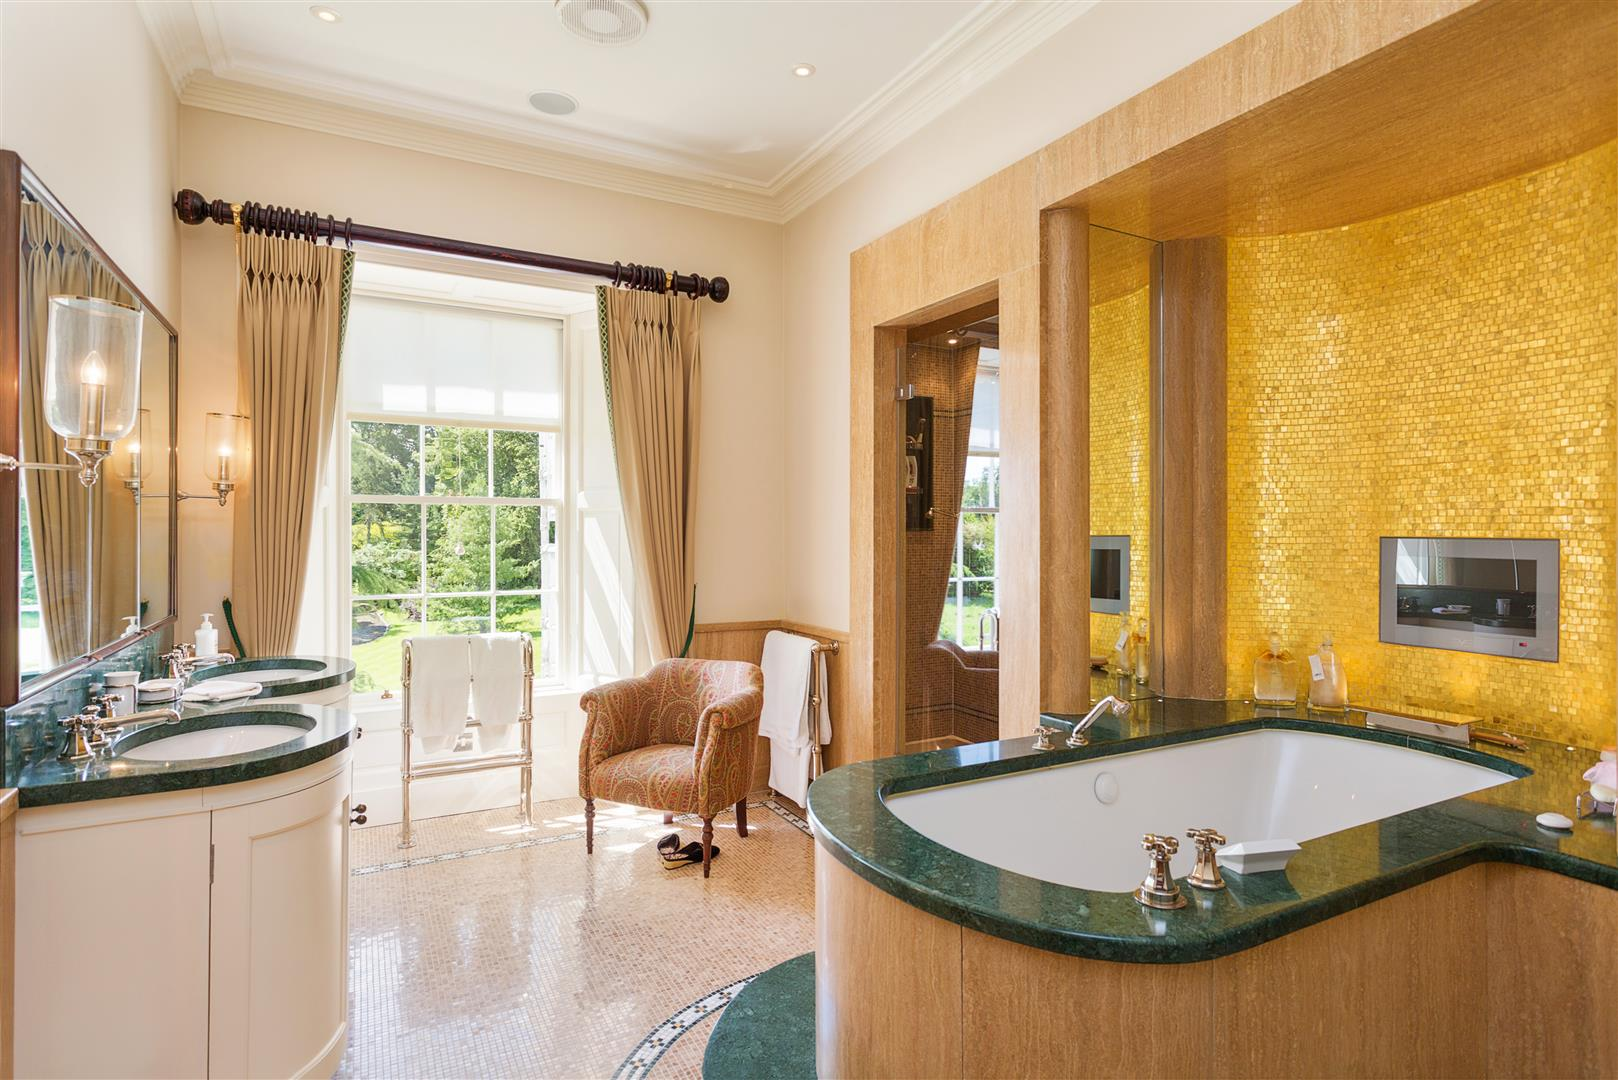 Fedamore House Fedamore Limerick A Luxury Home For Sale